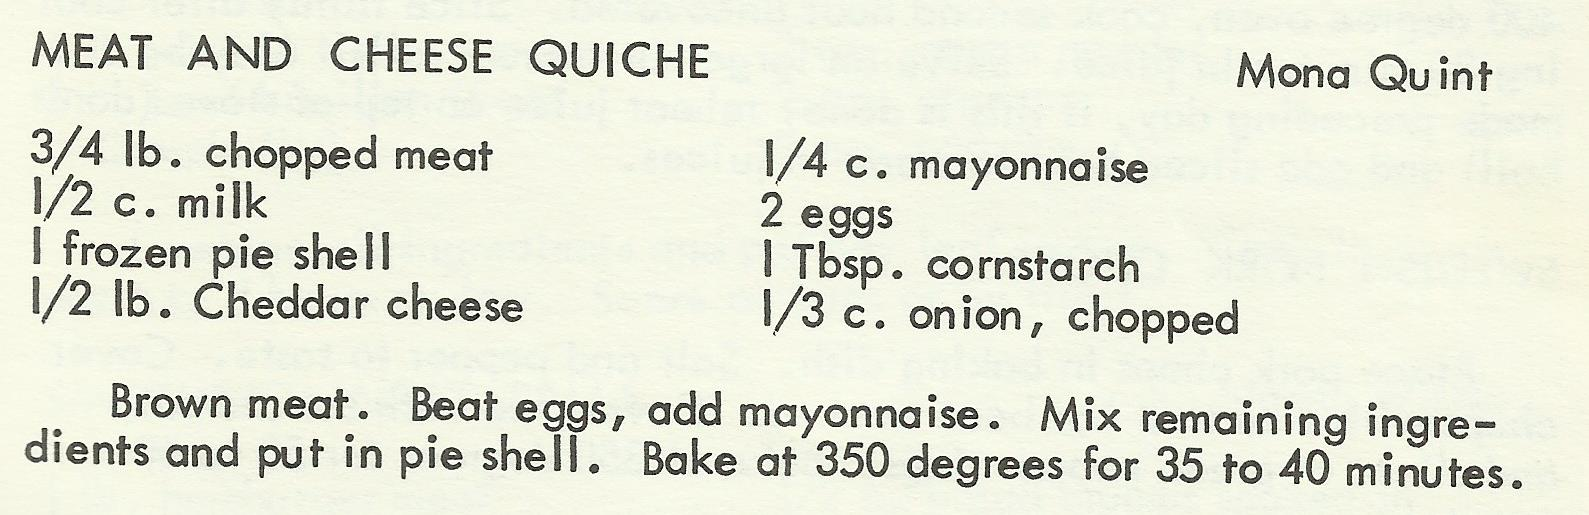 Meat and Cheese Quiche